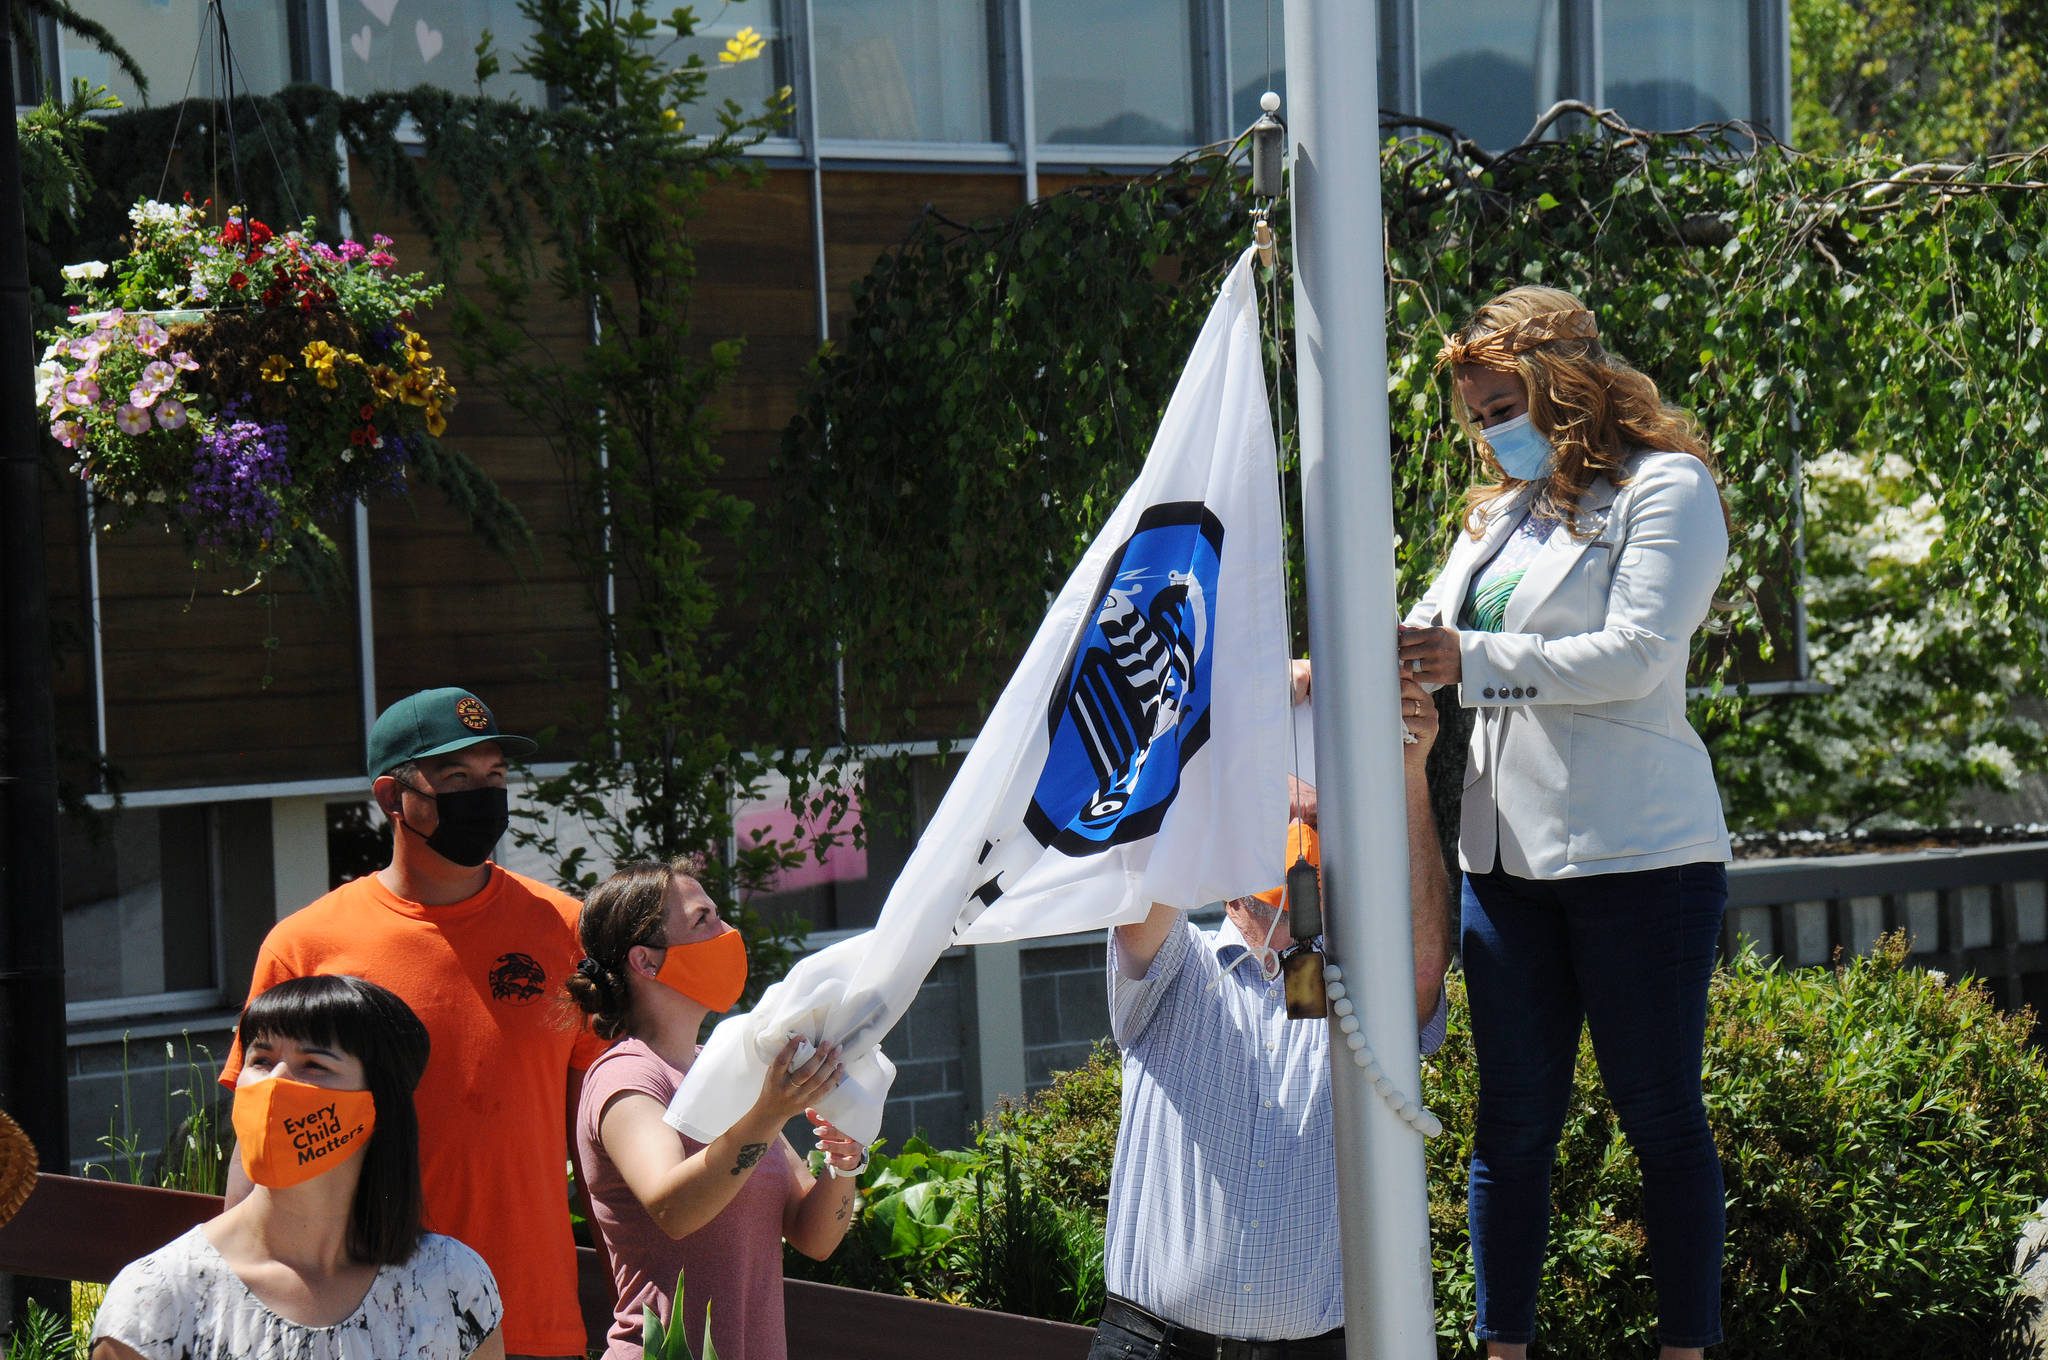 Members of Tseshaht First Nation prepare to raise their nation's flag in front of Port Alberni City Hall on Monday, June 21, 2021. (SUSAN QUINN/ Alberni Valley News)